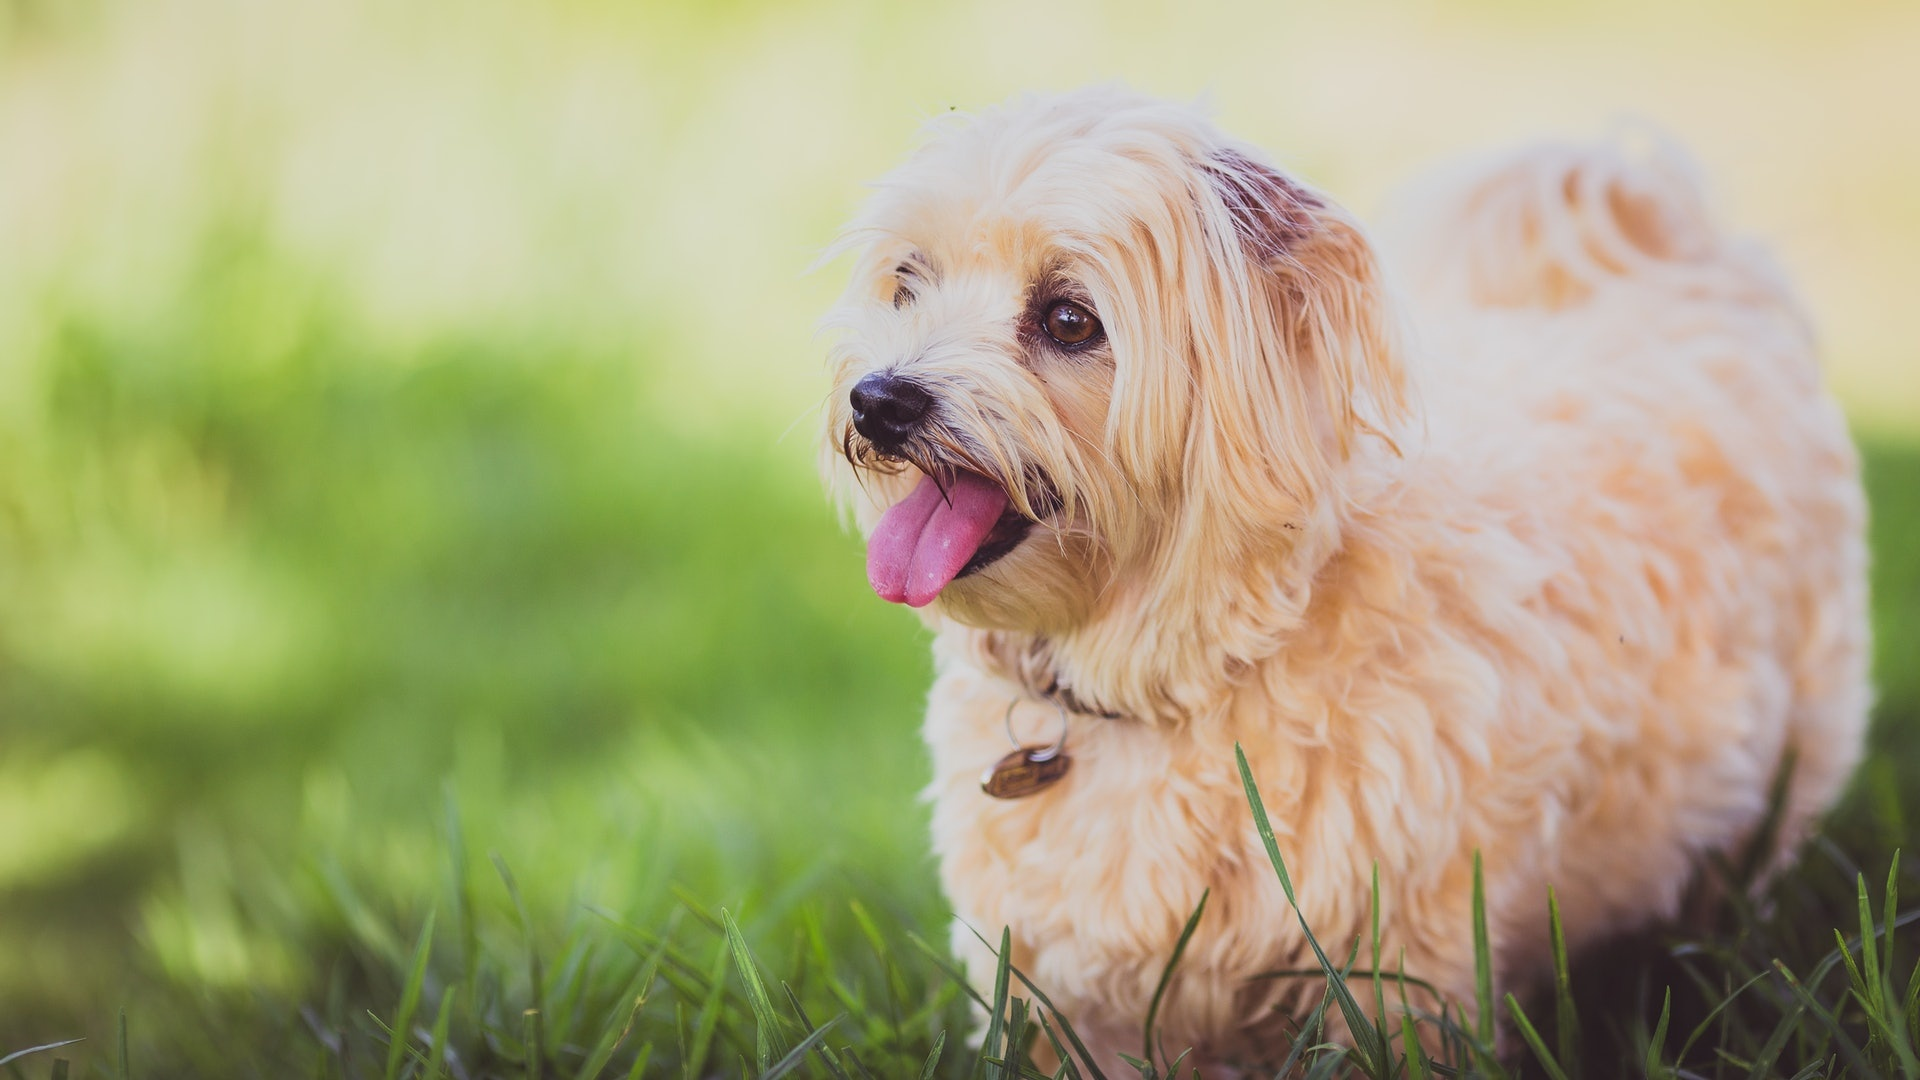 Dog Stock Photos Collection [Free Download]